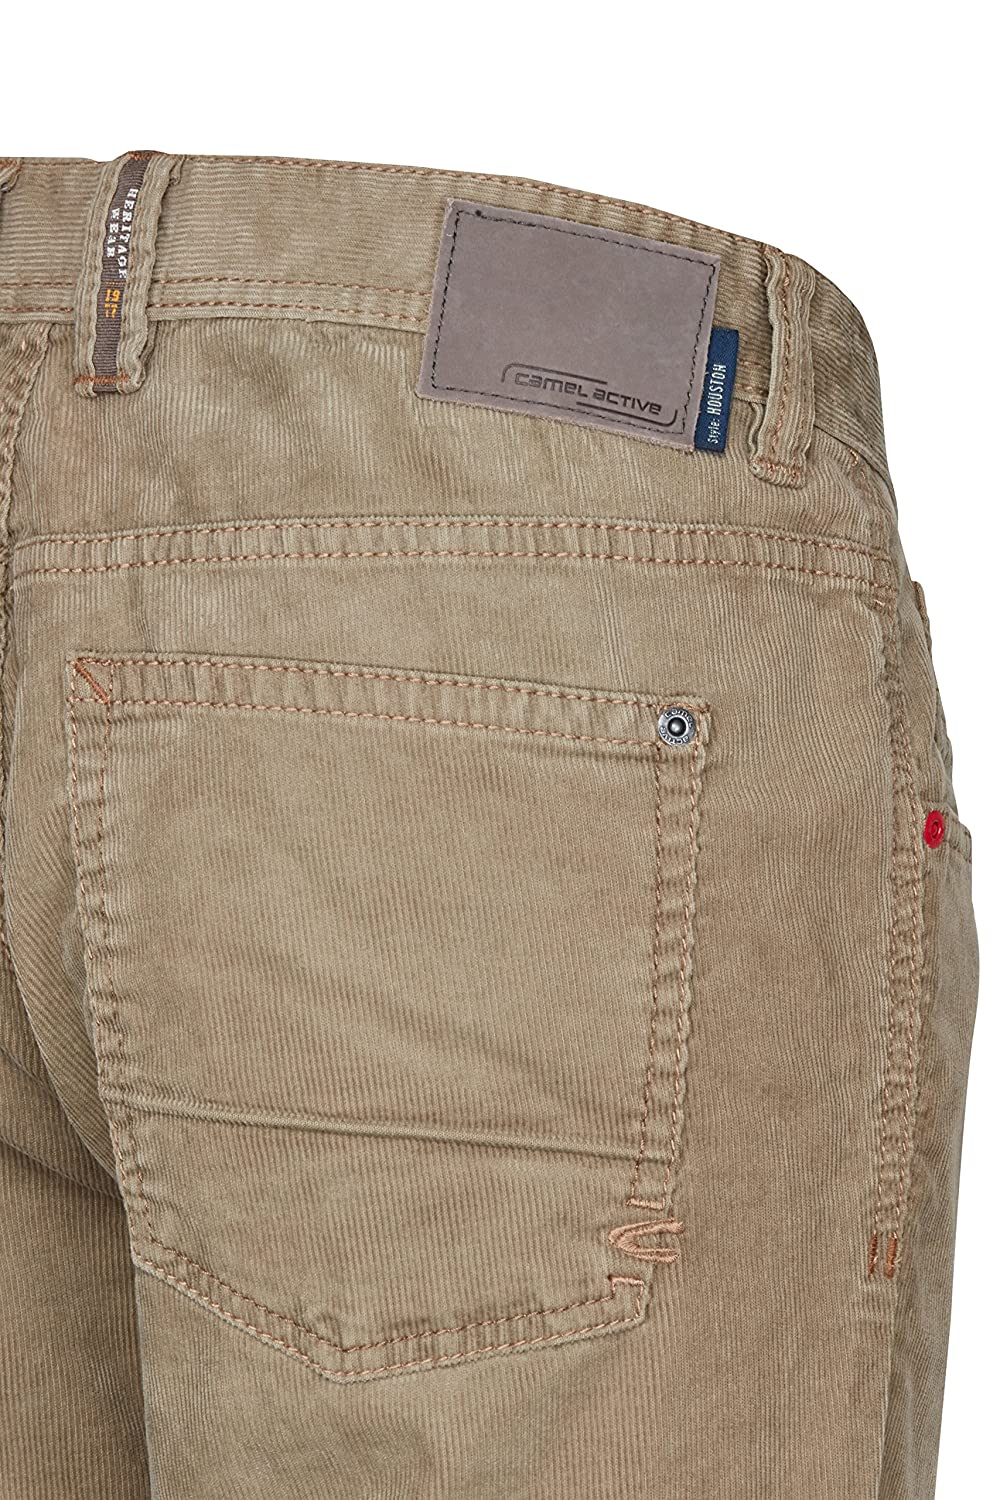 camel active Jeans Houston Herren Hose Straight-Fit-Passform 488175 6-92  14  Amazon.de  Bekleidung 44460bea8d